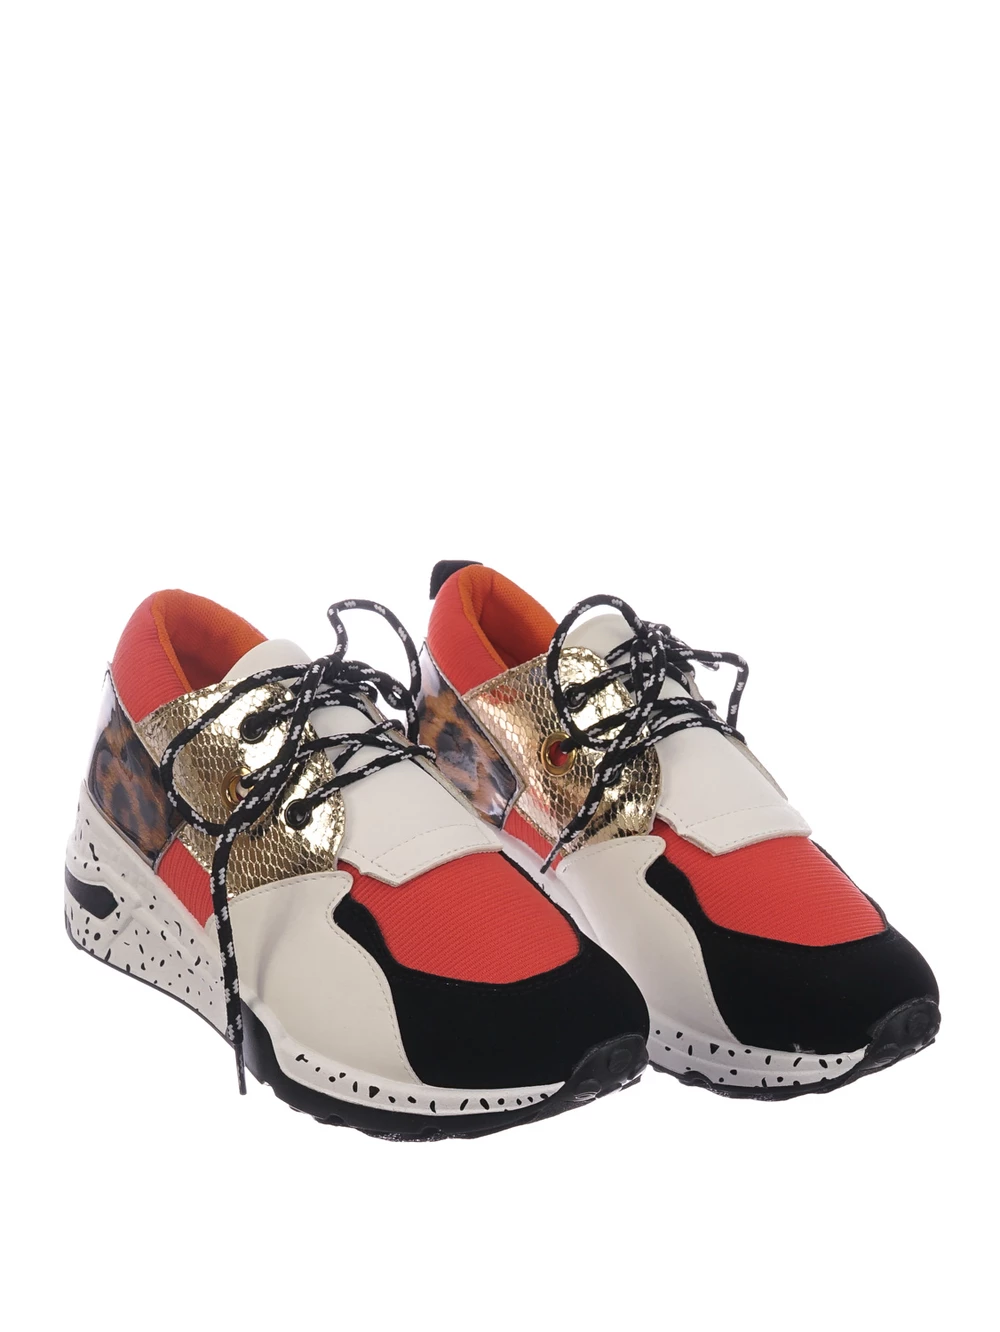 Galaxy01 Forever Link Chunky Daddy Platform Sneaker